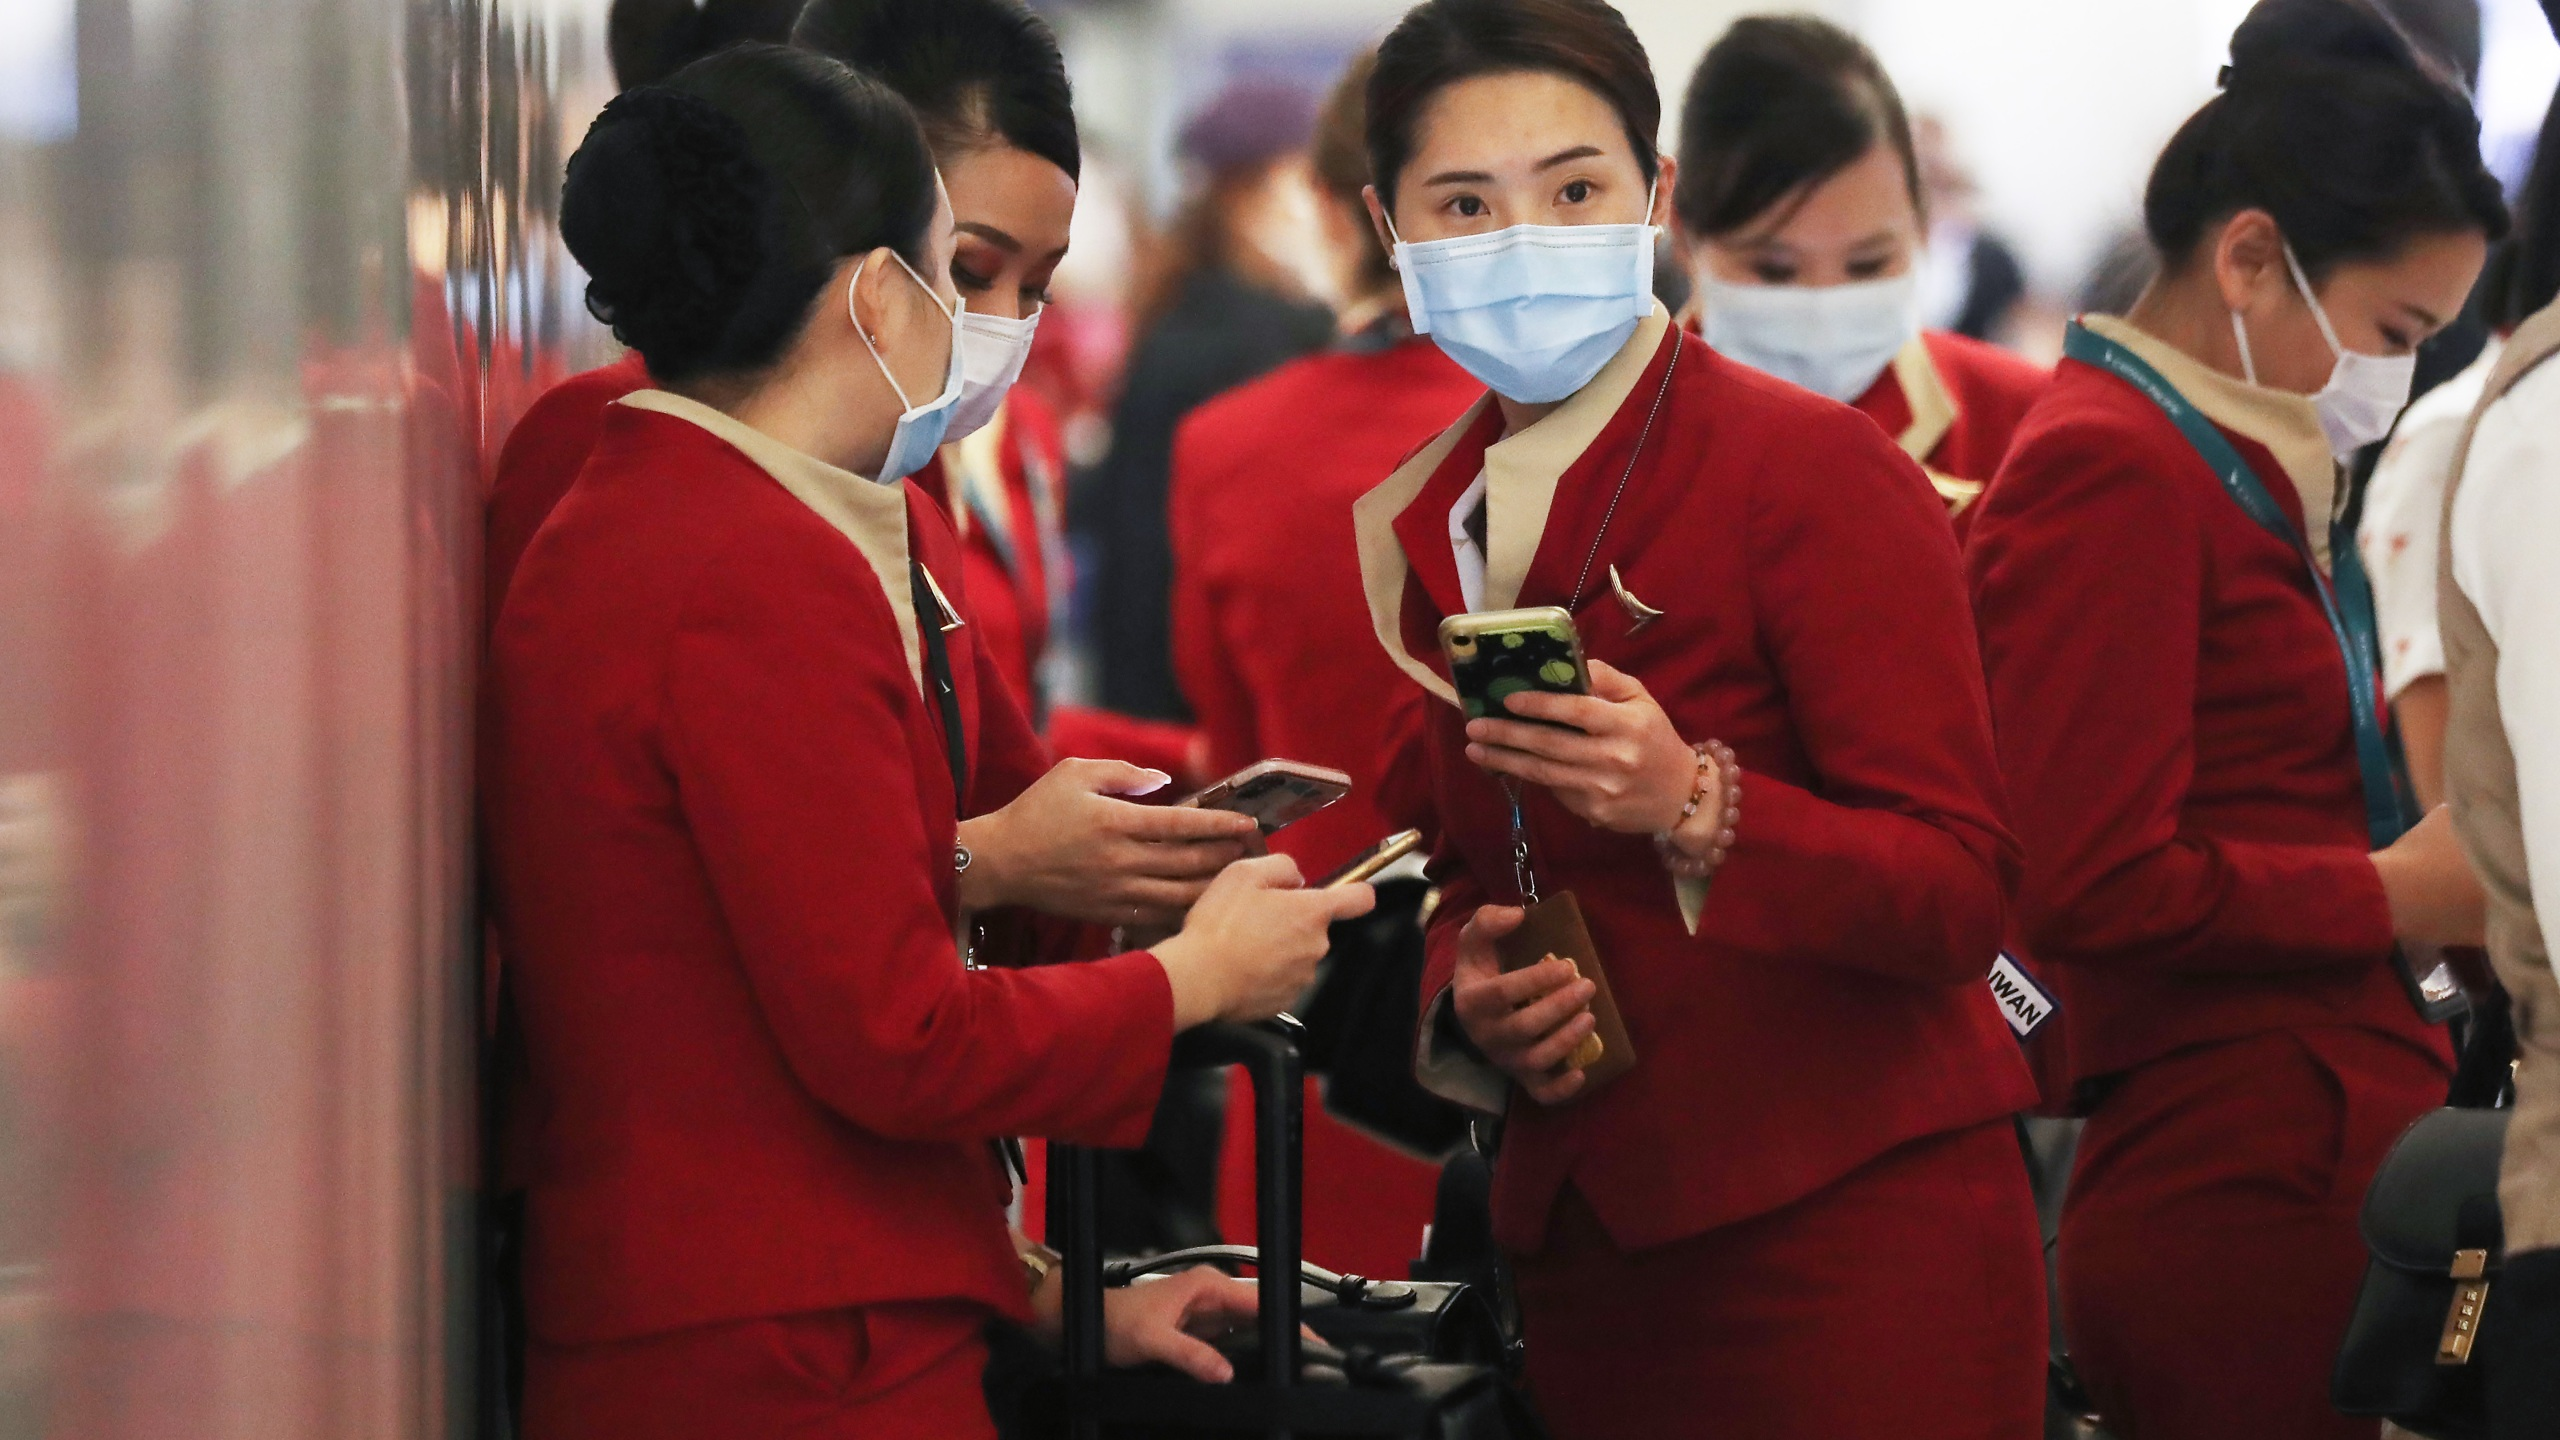 A flight crew from Cathay Pacific Airways, wearing protective masks, stand in the international terminal at Los Angeles International Airport after arriving on a flight from Hong Kong on Feb. 28, 2020. (Credit: Mario Tama / Getty Images)